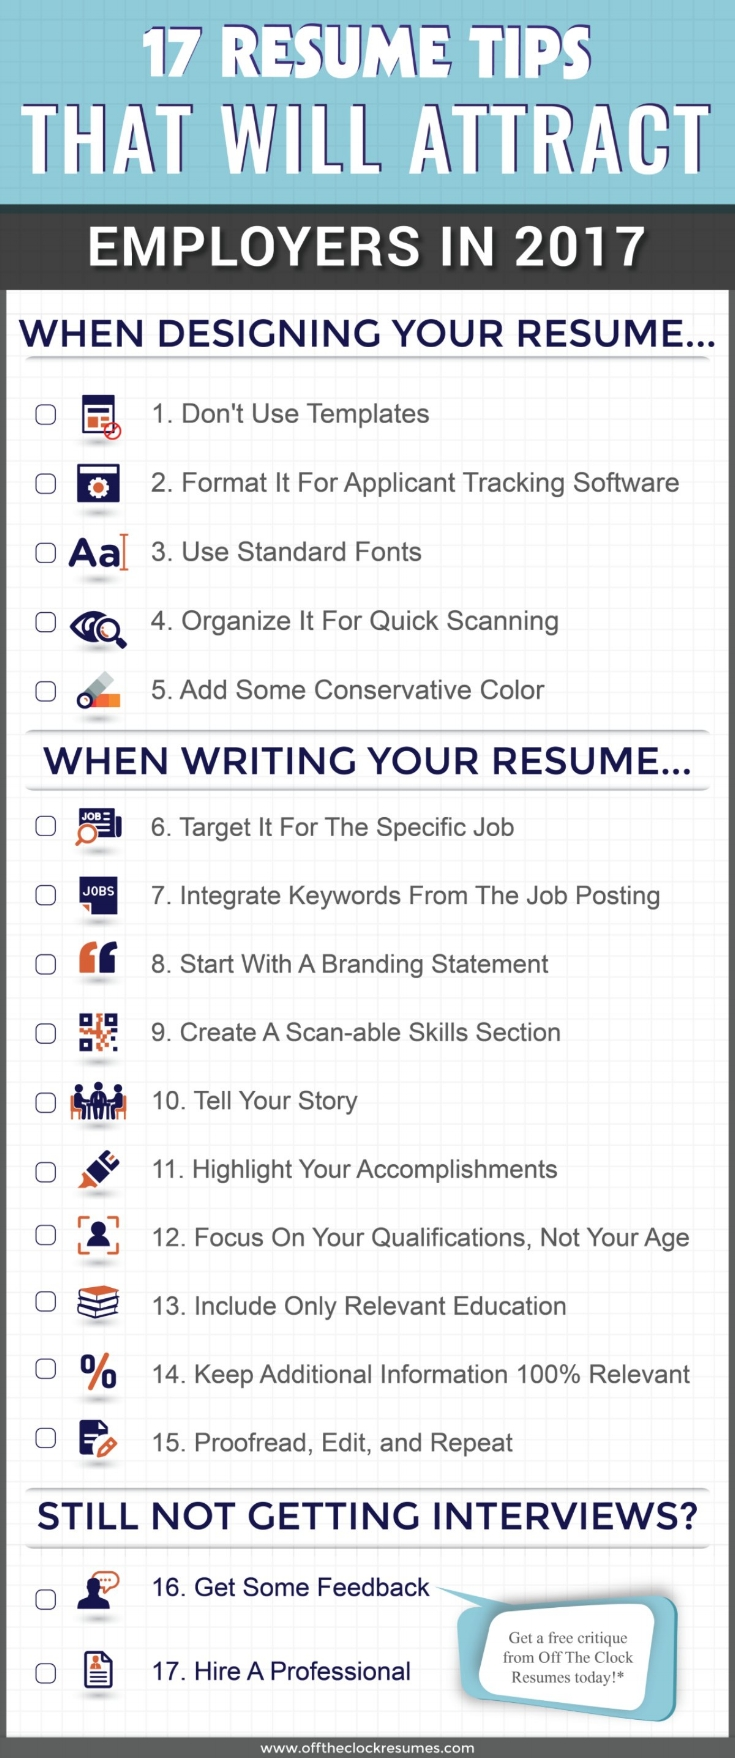 17 resume tips that will attract employers in 2017 infographic off the clock resumes resume tip how to organize